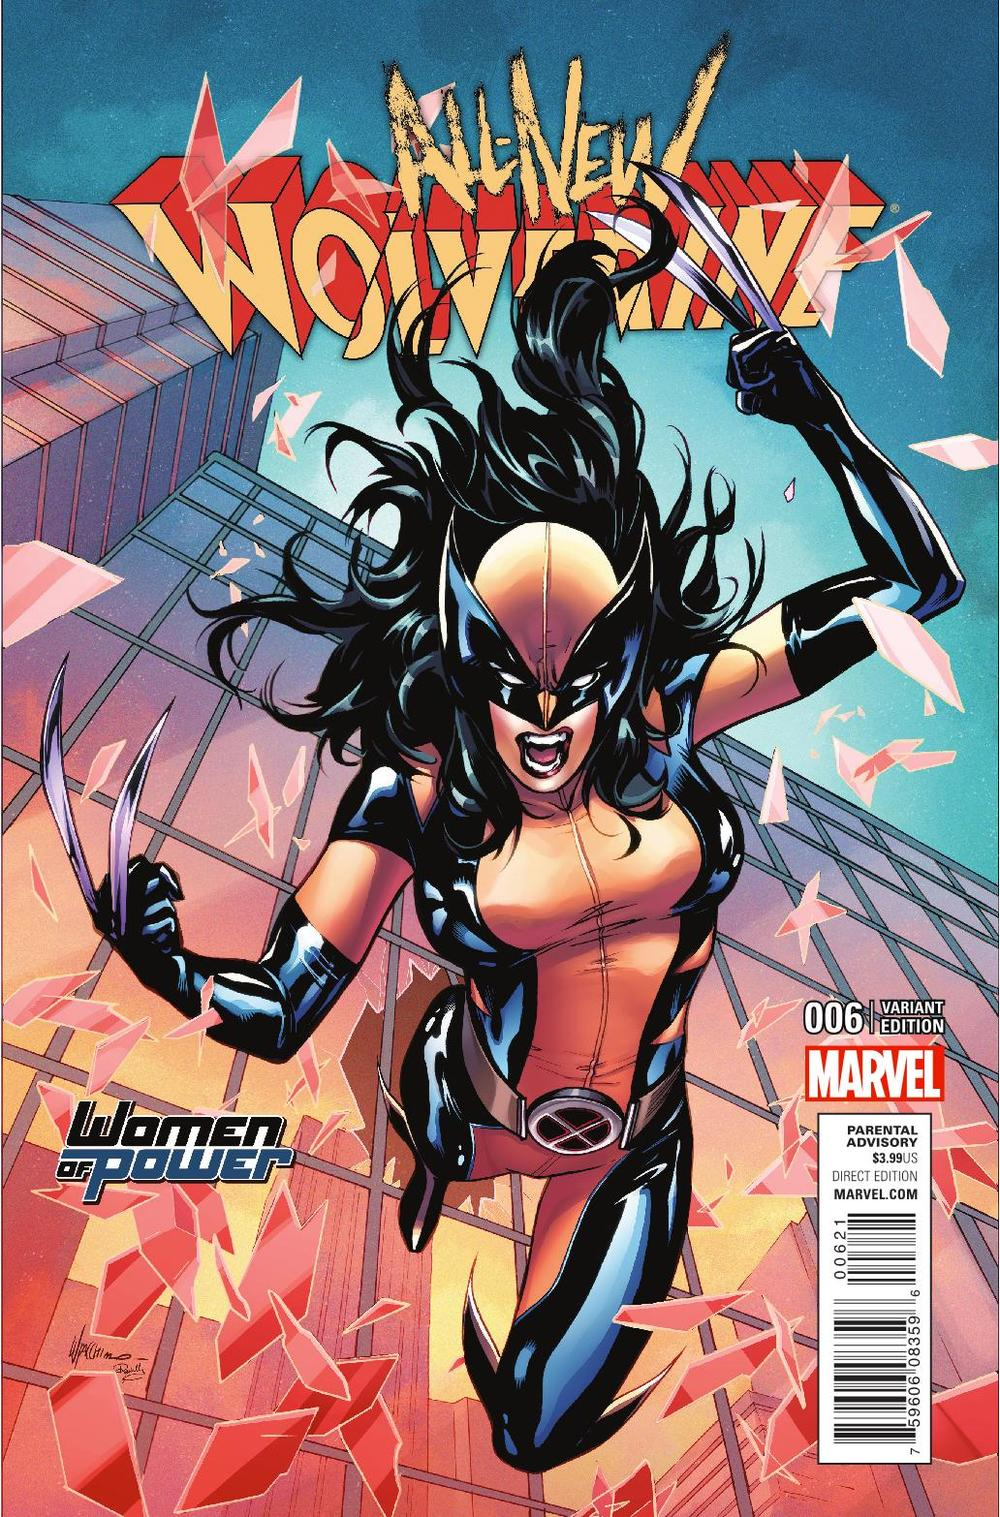 Marvel's All New Wolverine #6